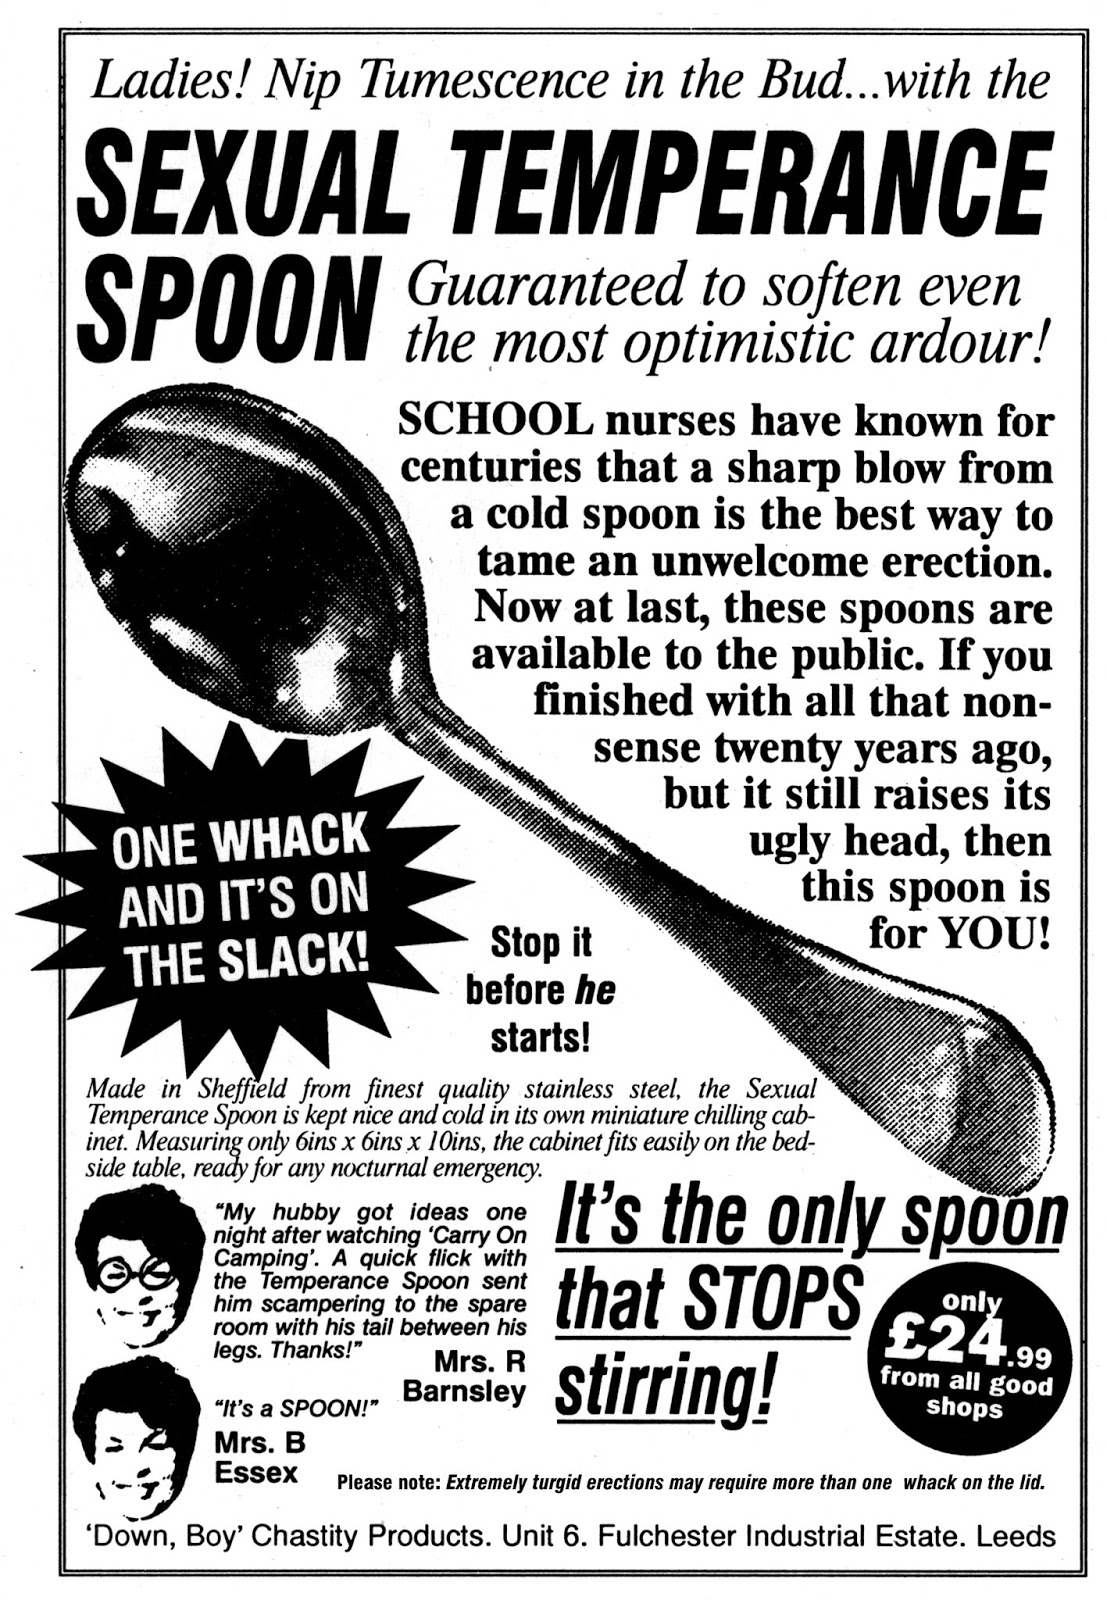 Sexual Temperance Spoon: The Only Spoon That STOPS Stirring!